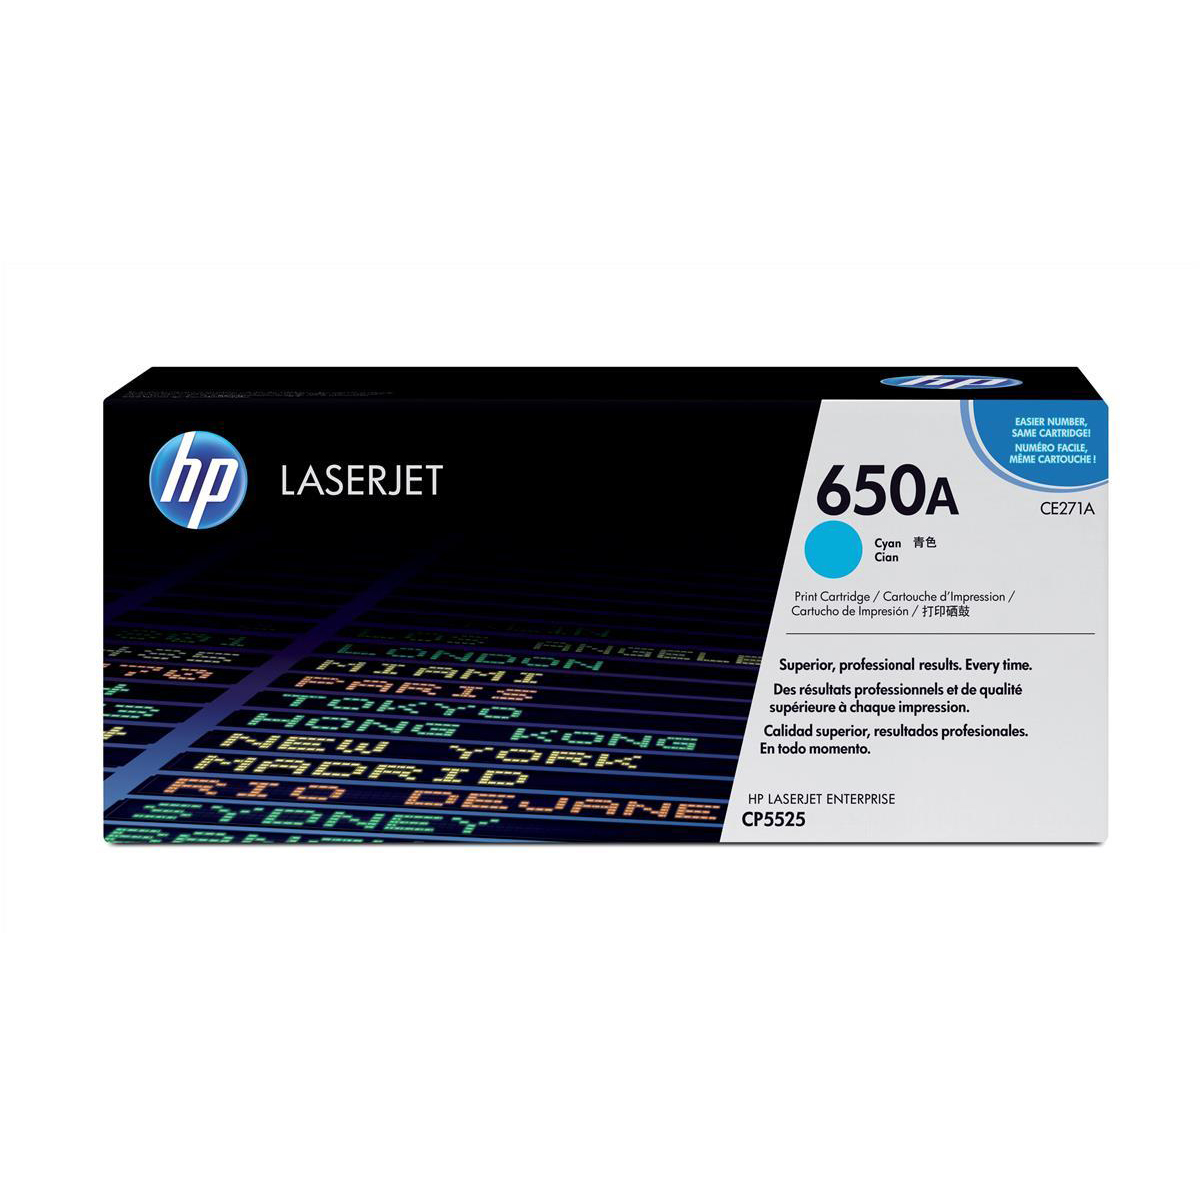 HP 650A Laser Toner Cartridge Page Life 15000pp Cyan Ref CE271A